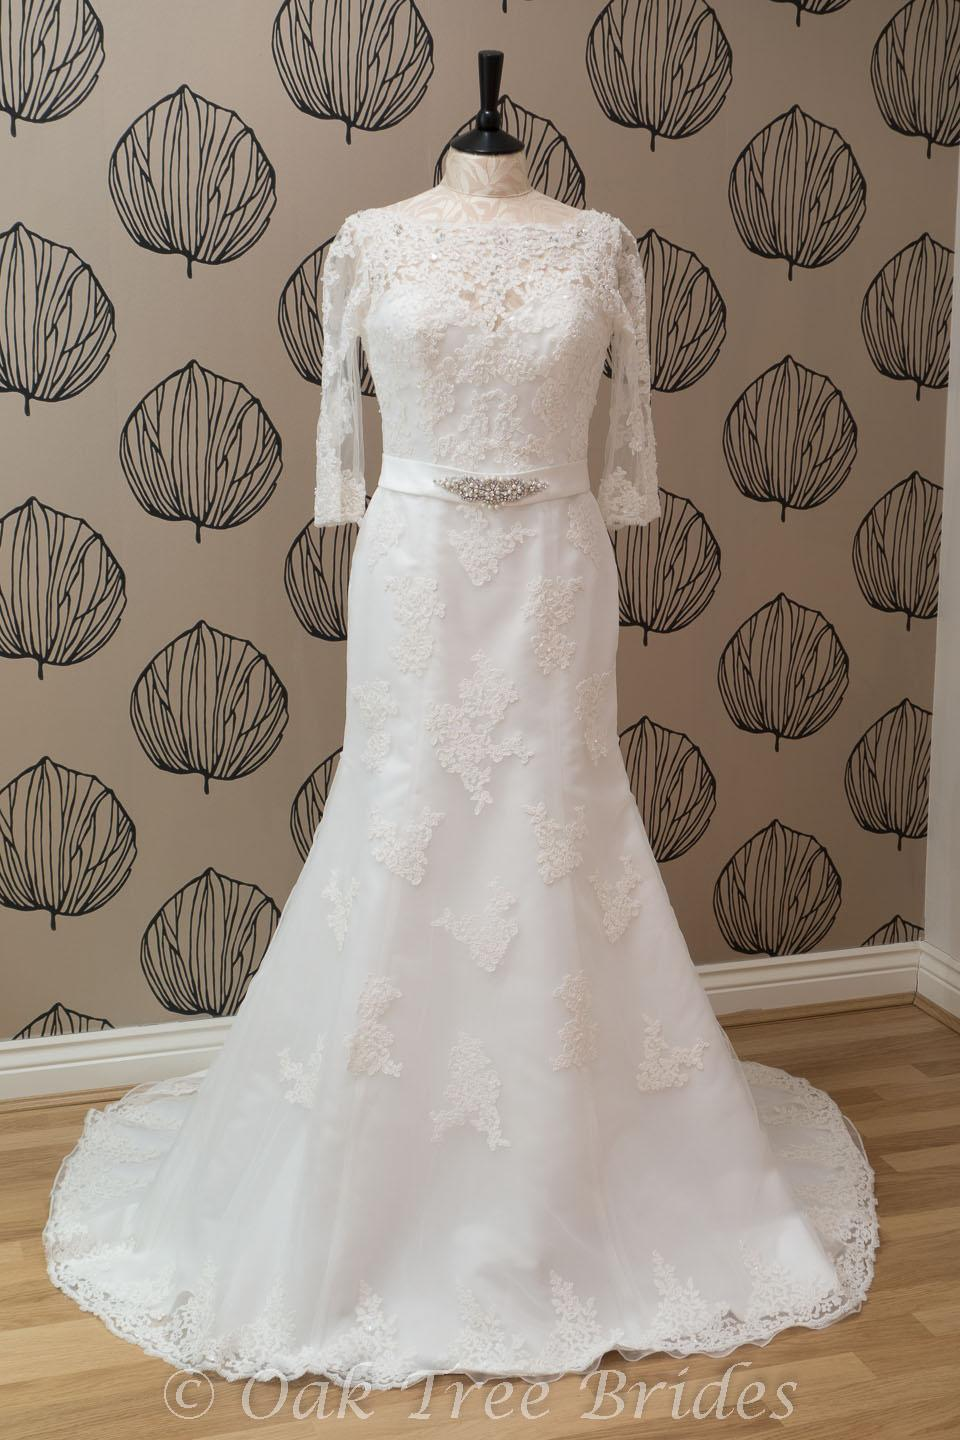 Ronald joyce philippa 66036 oak tree brides for Ronald joyce wedding dresses prices